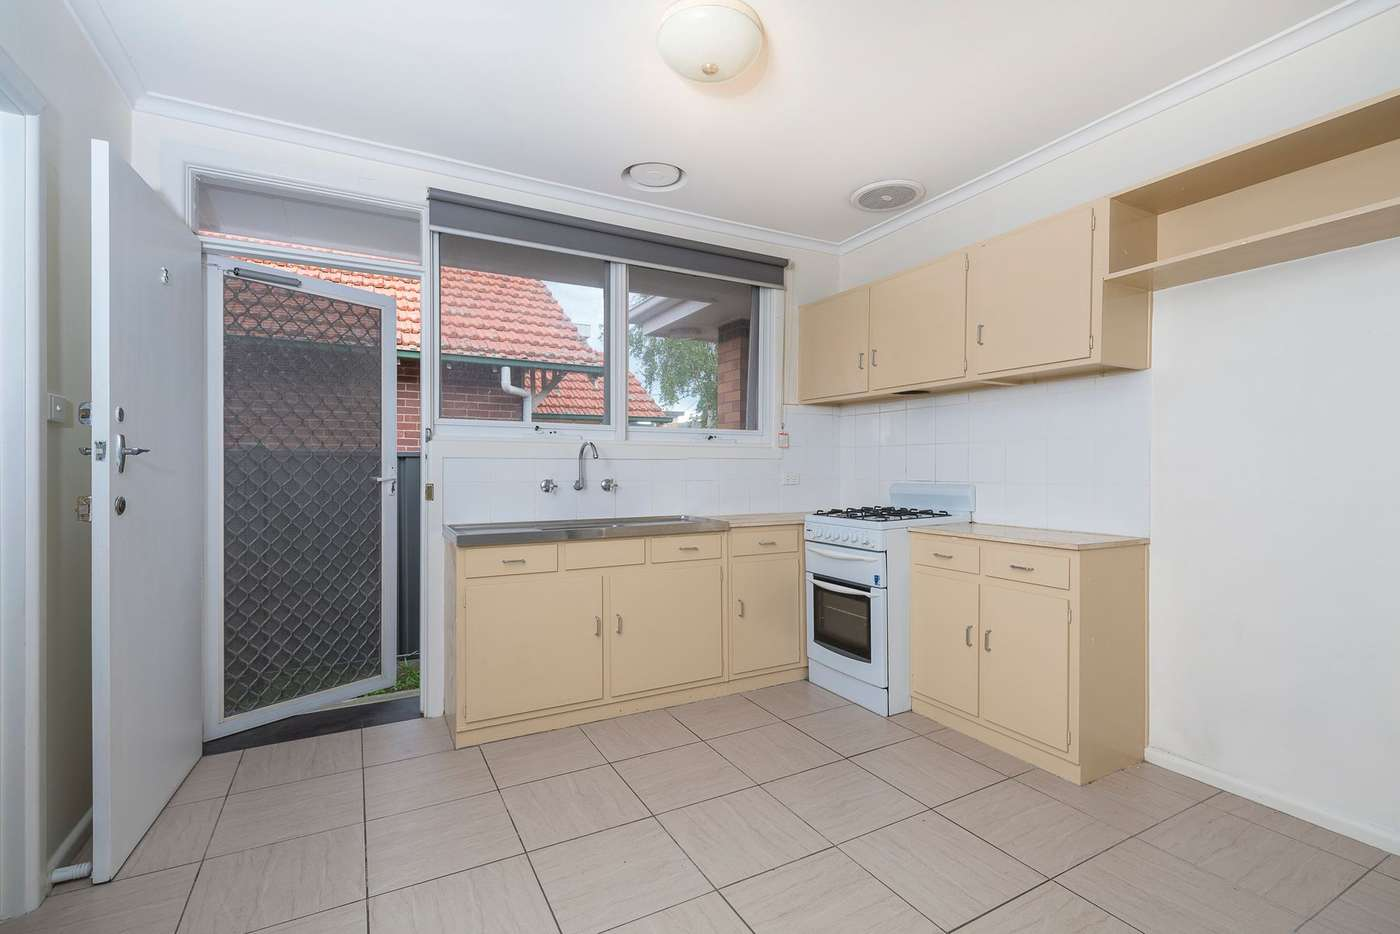 Fifth view of Homely villa listing, 3/6 Lincoln Road, Essendon VIC 3040